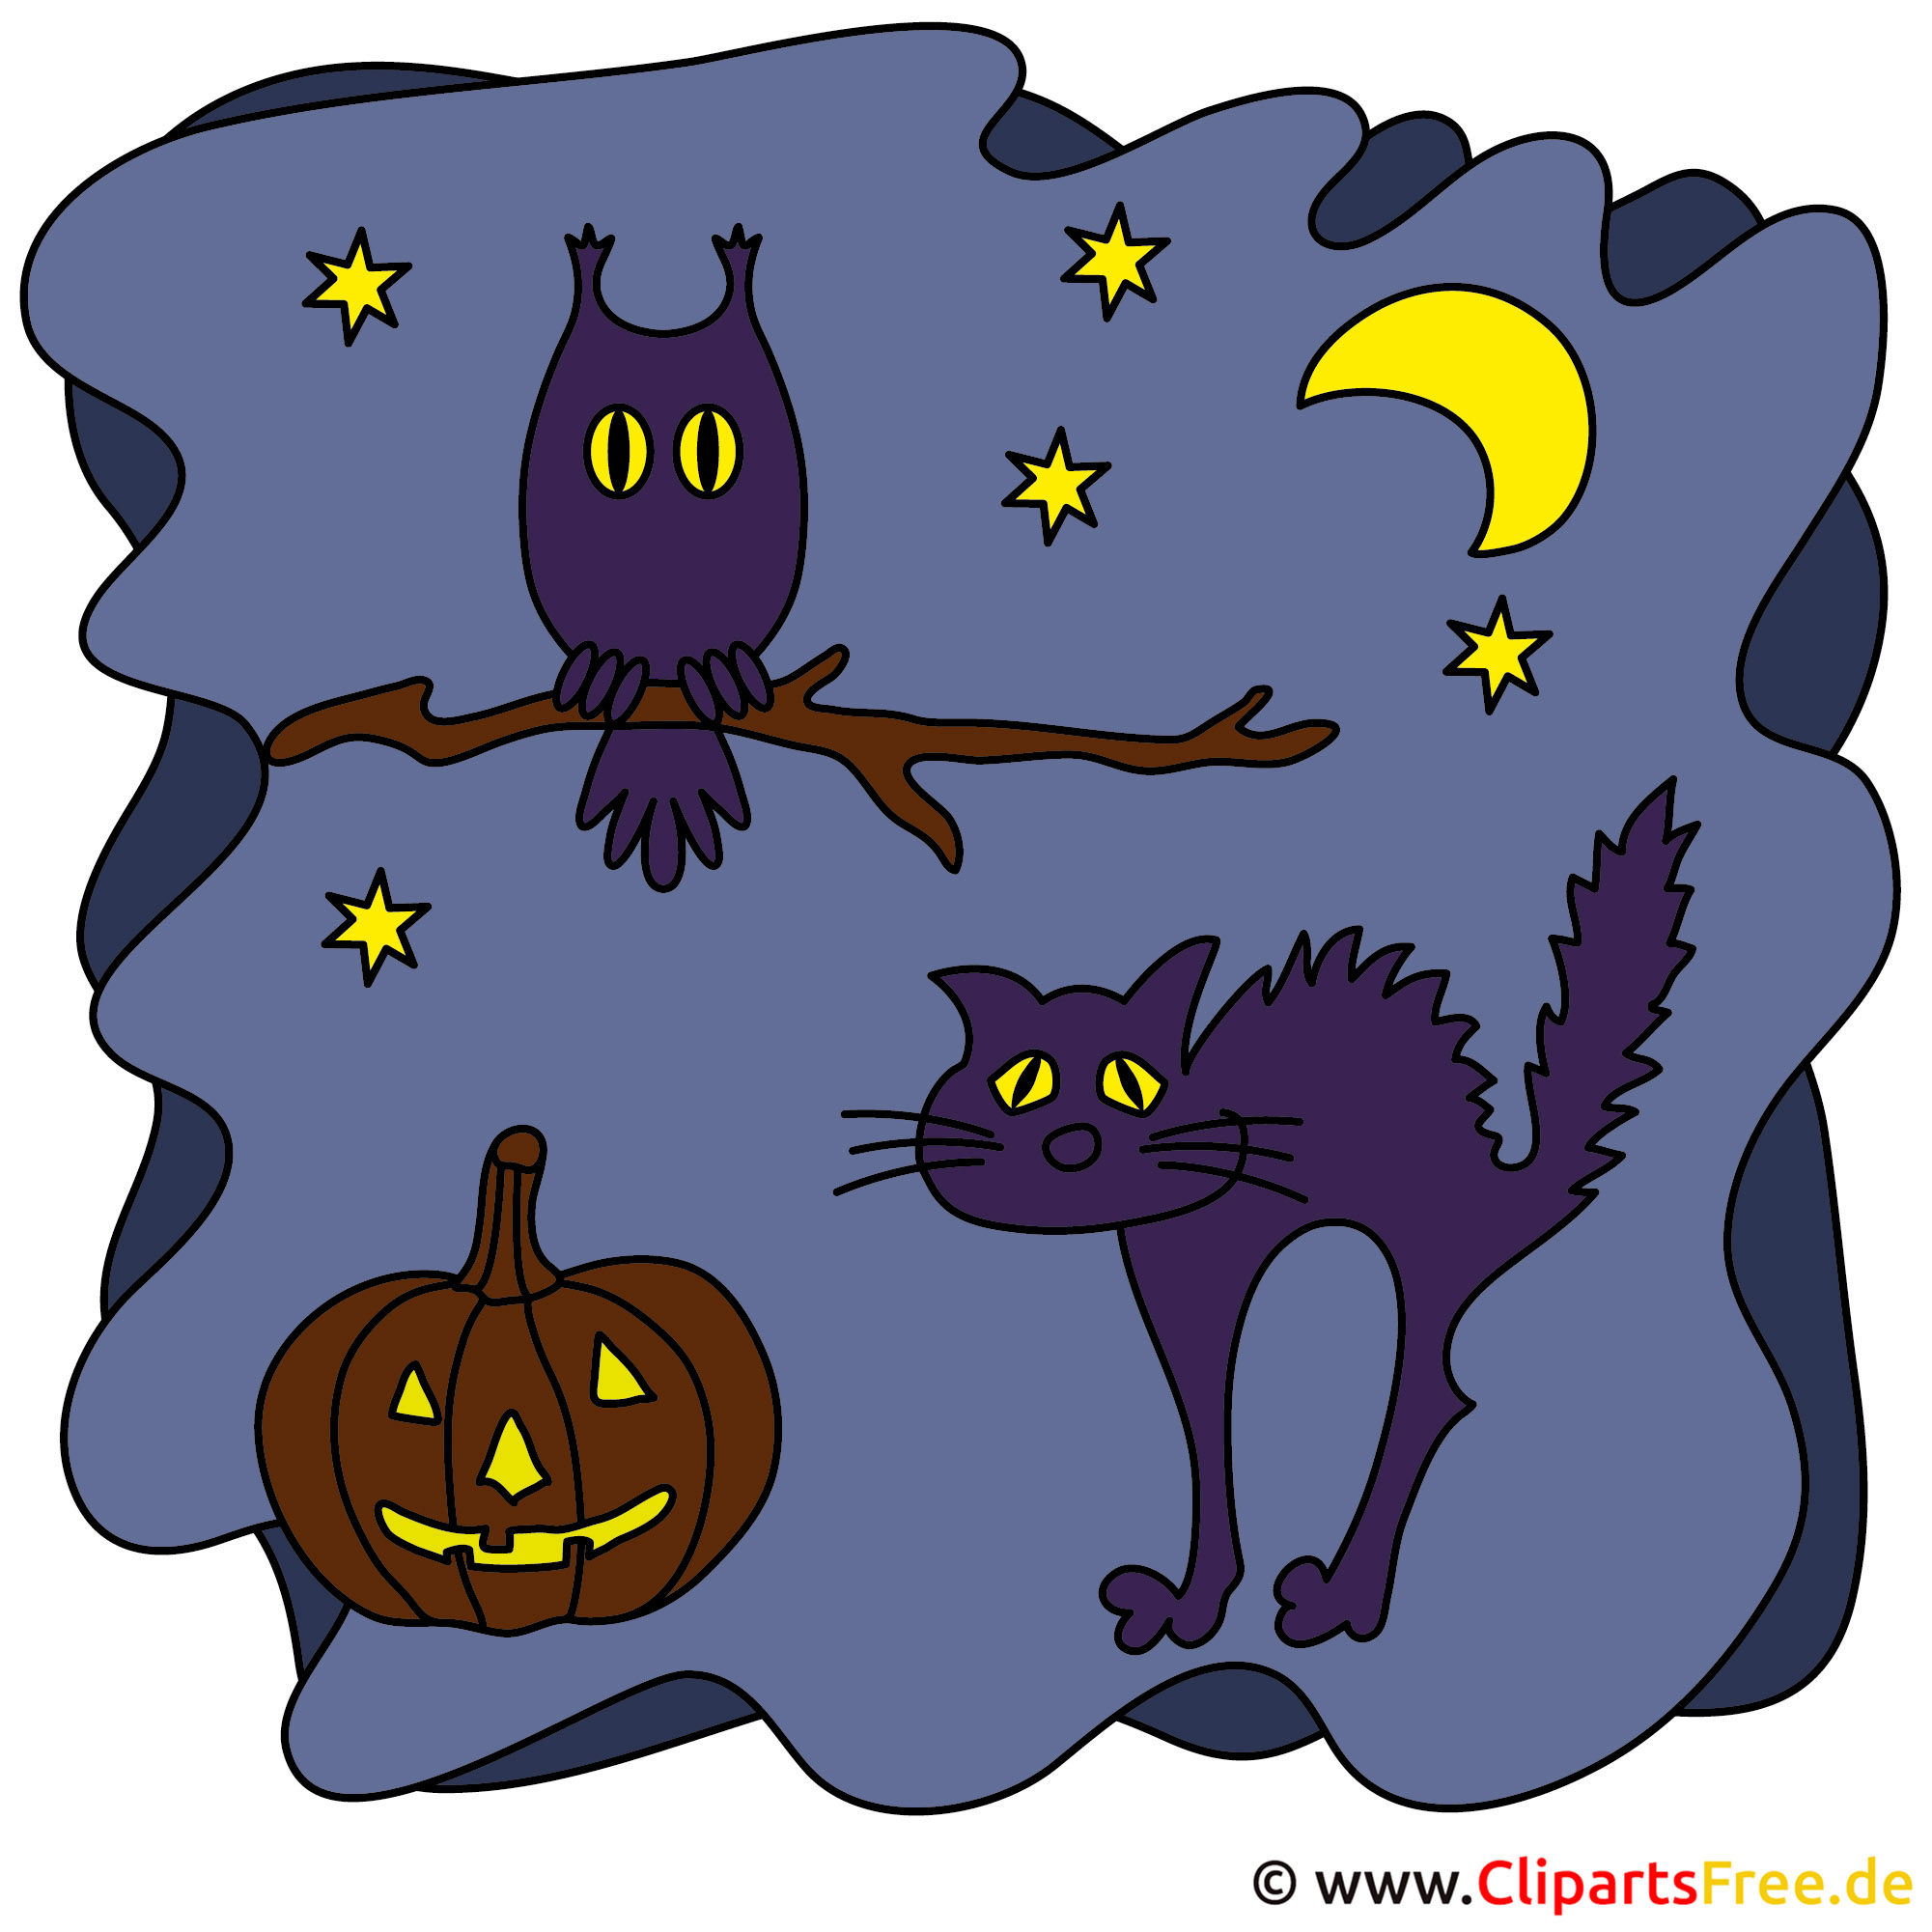 basteln zu halloween mit unseren clipart bildern. Black Bedroom Furniture Sets. Home Design Ideas